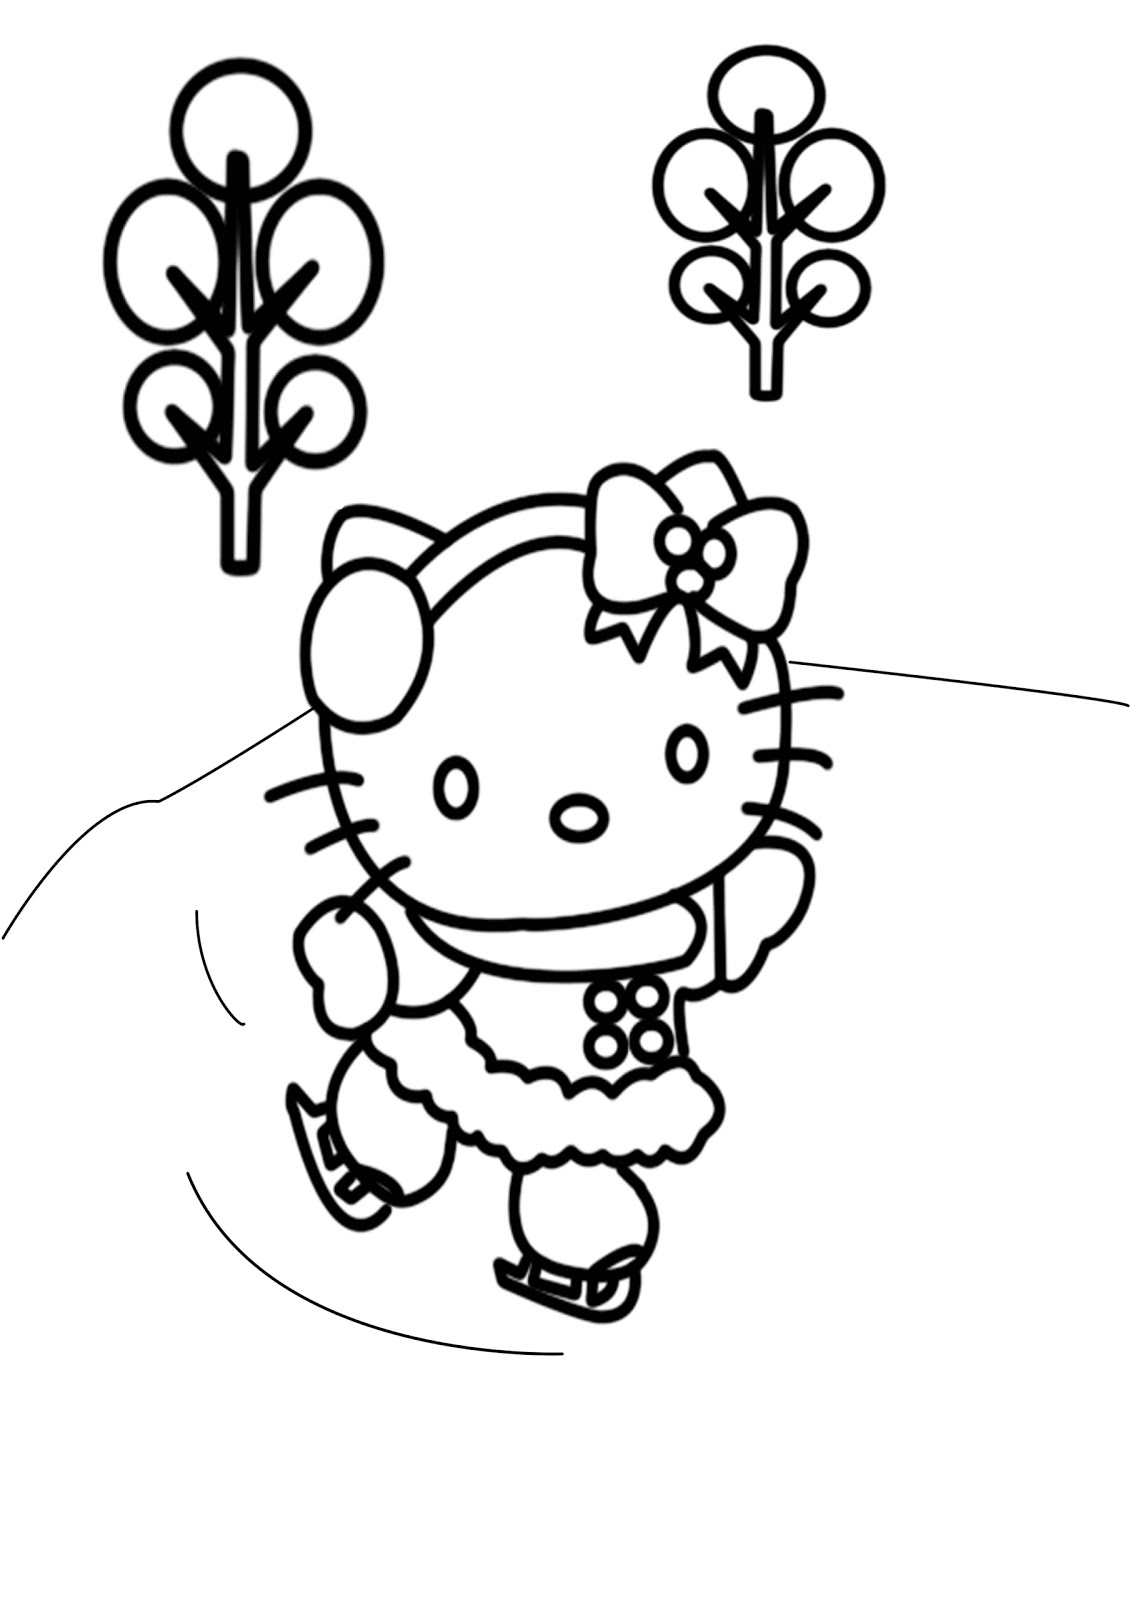 All Free Coloring Page For Kids : March 2012